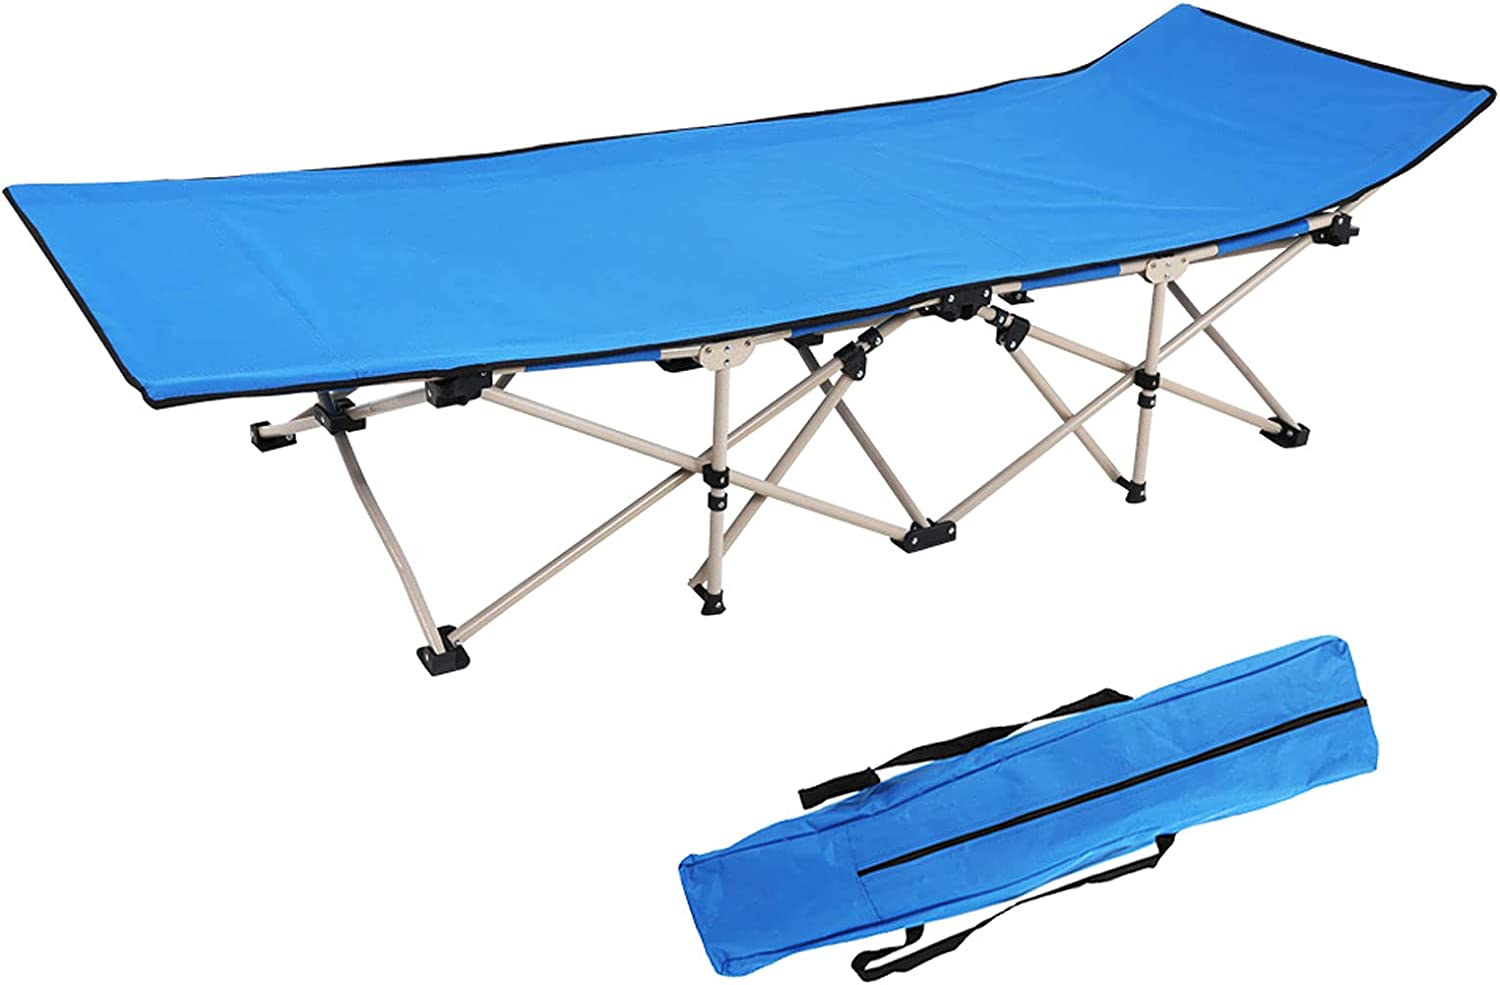 Camping Cot for Adults Sales for sale Portable Tent Bed Sleeping Folding National uniform free shipping